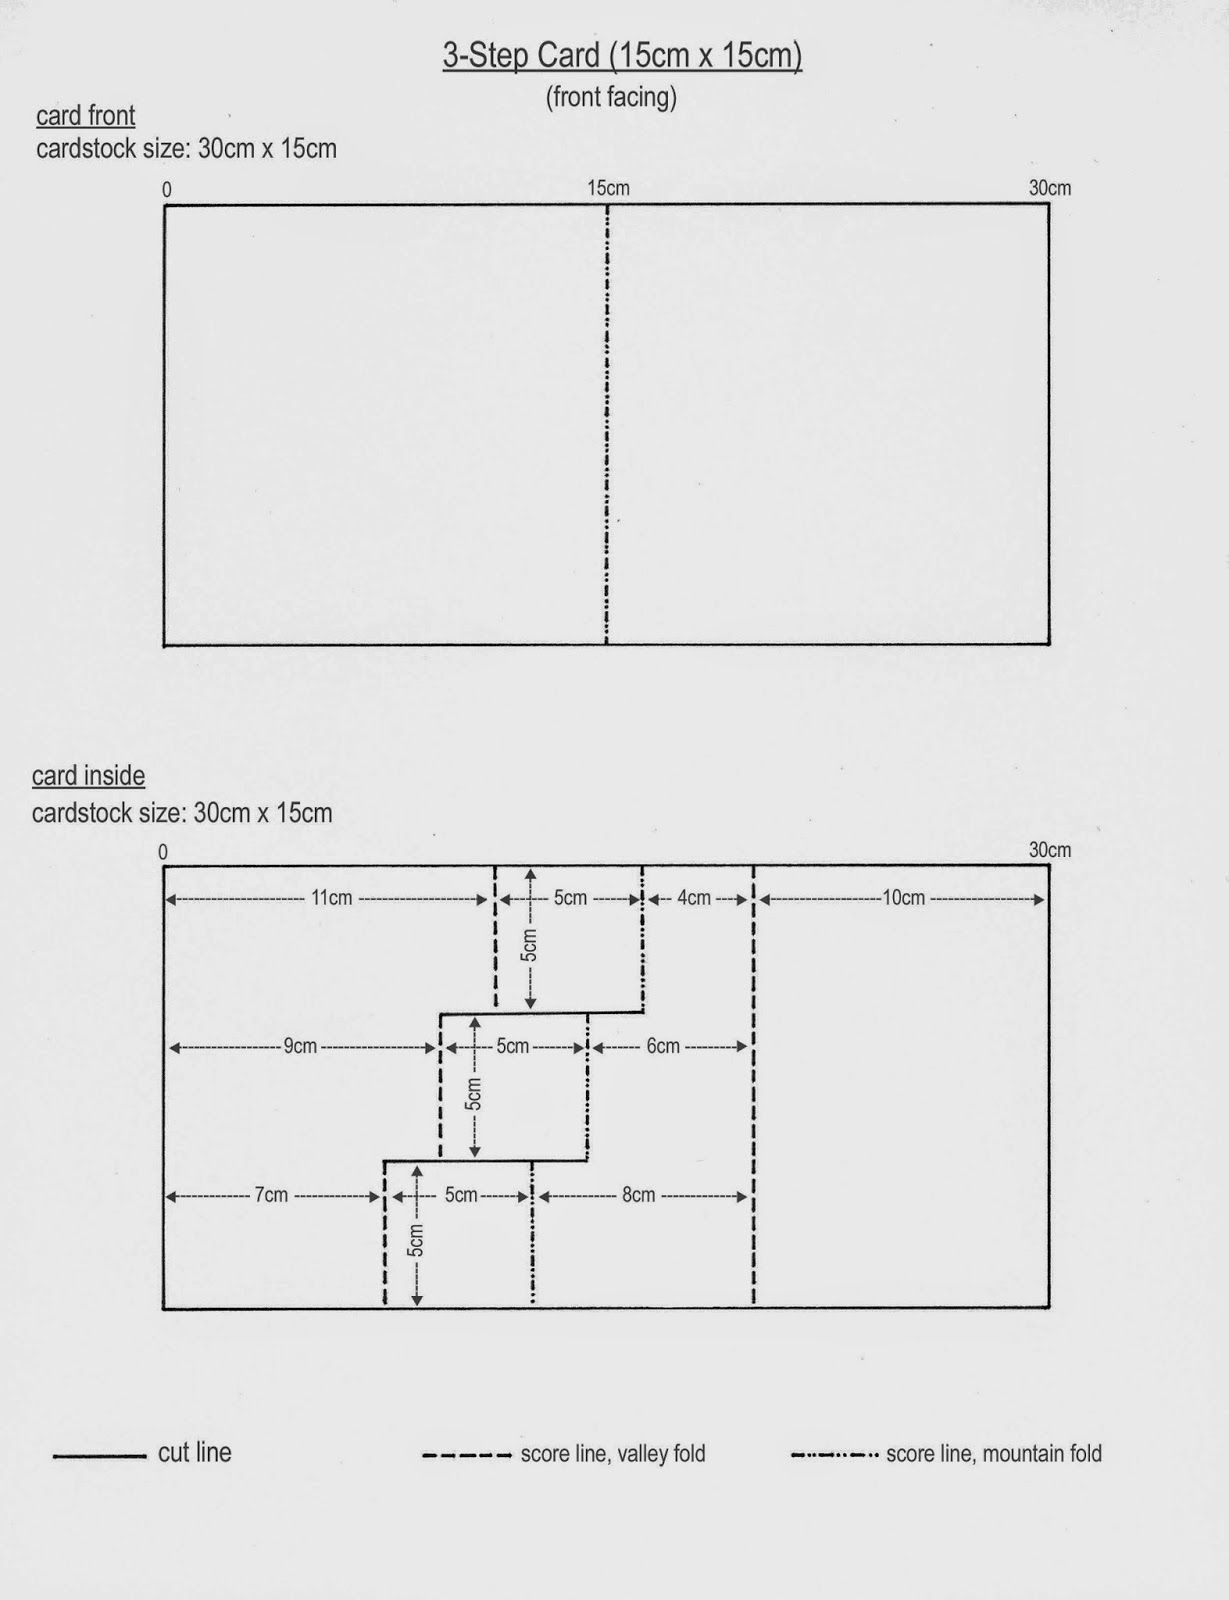 Template For 3 Step Card 6 X 6 Front Facing Step Cards Card Making Templates Cards